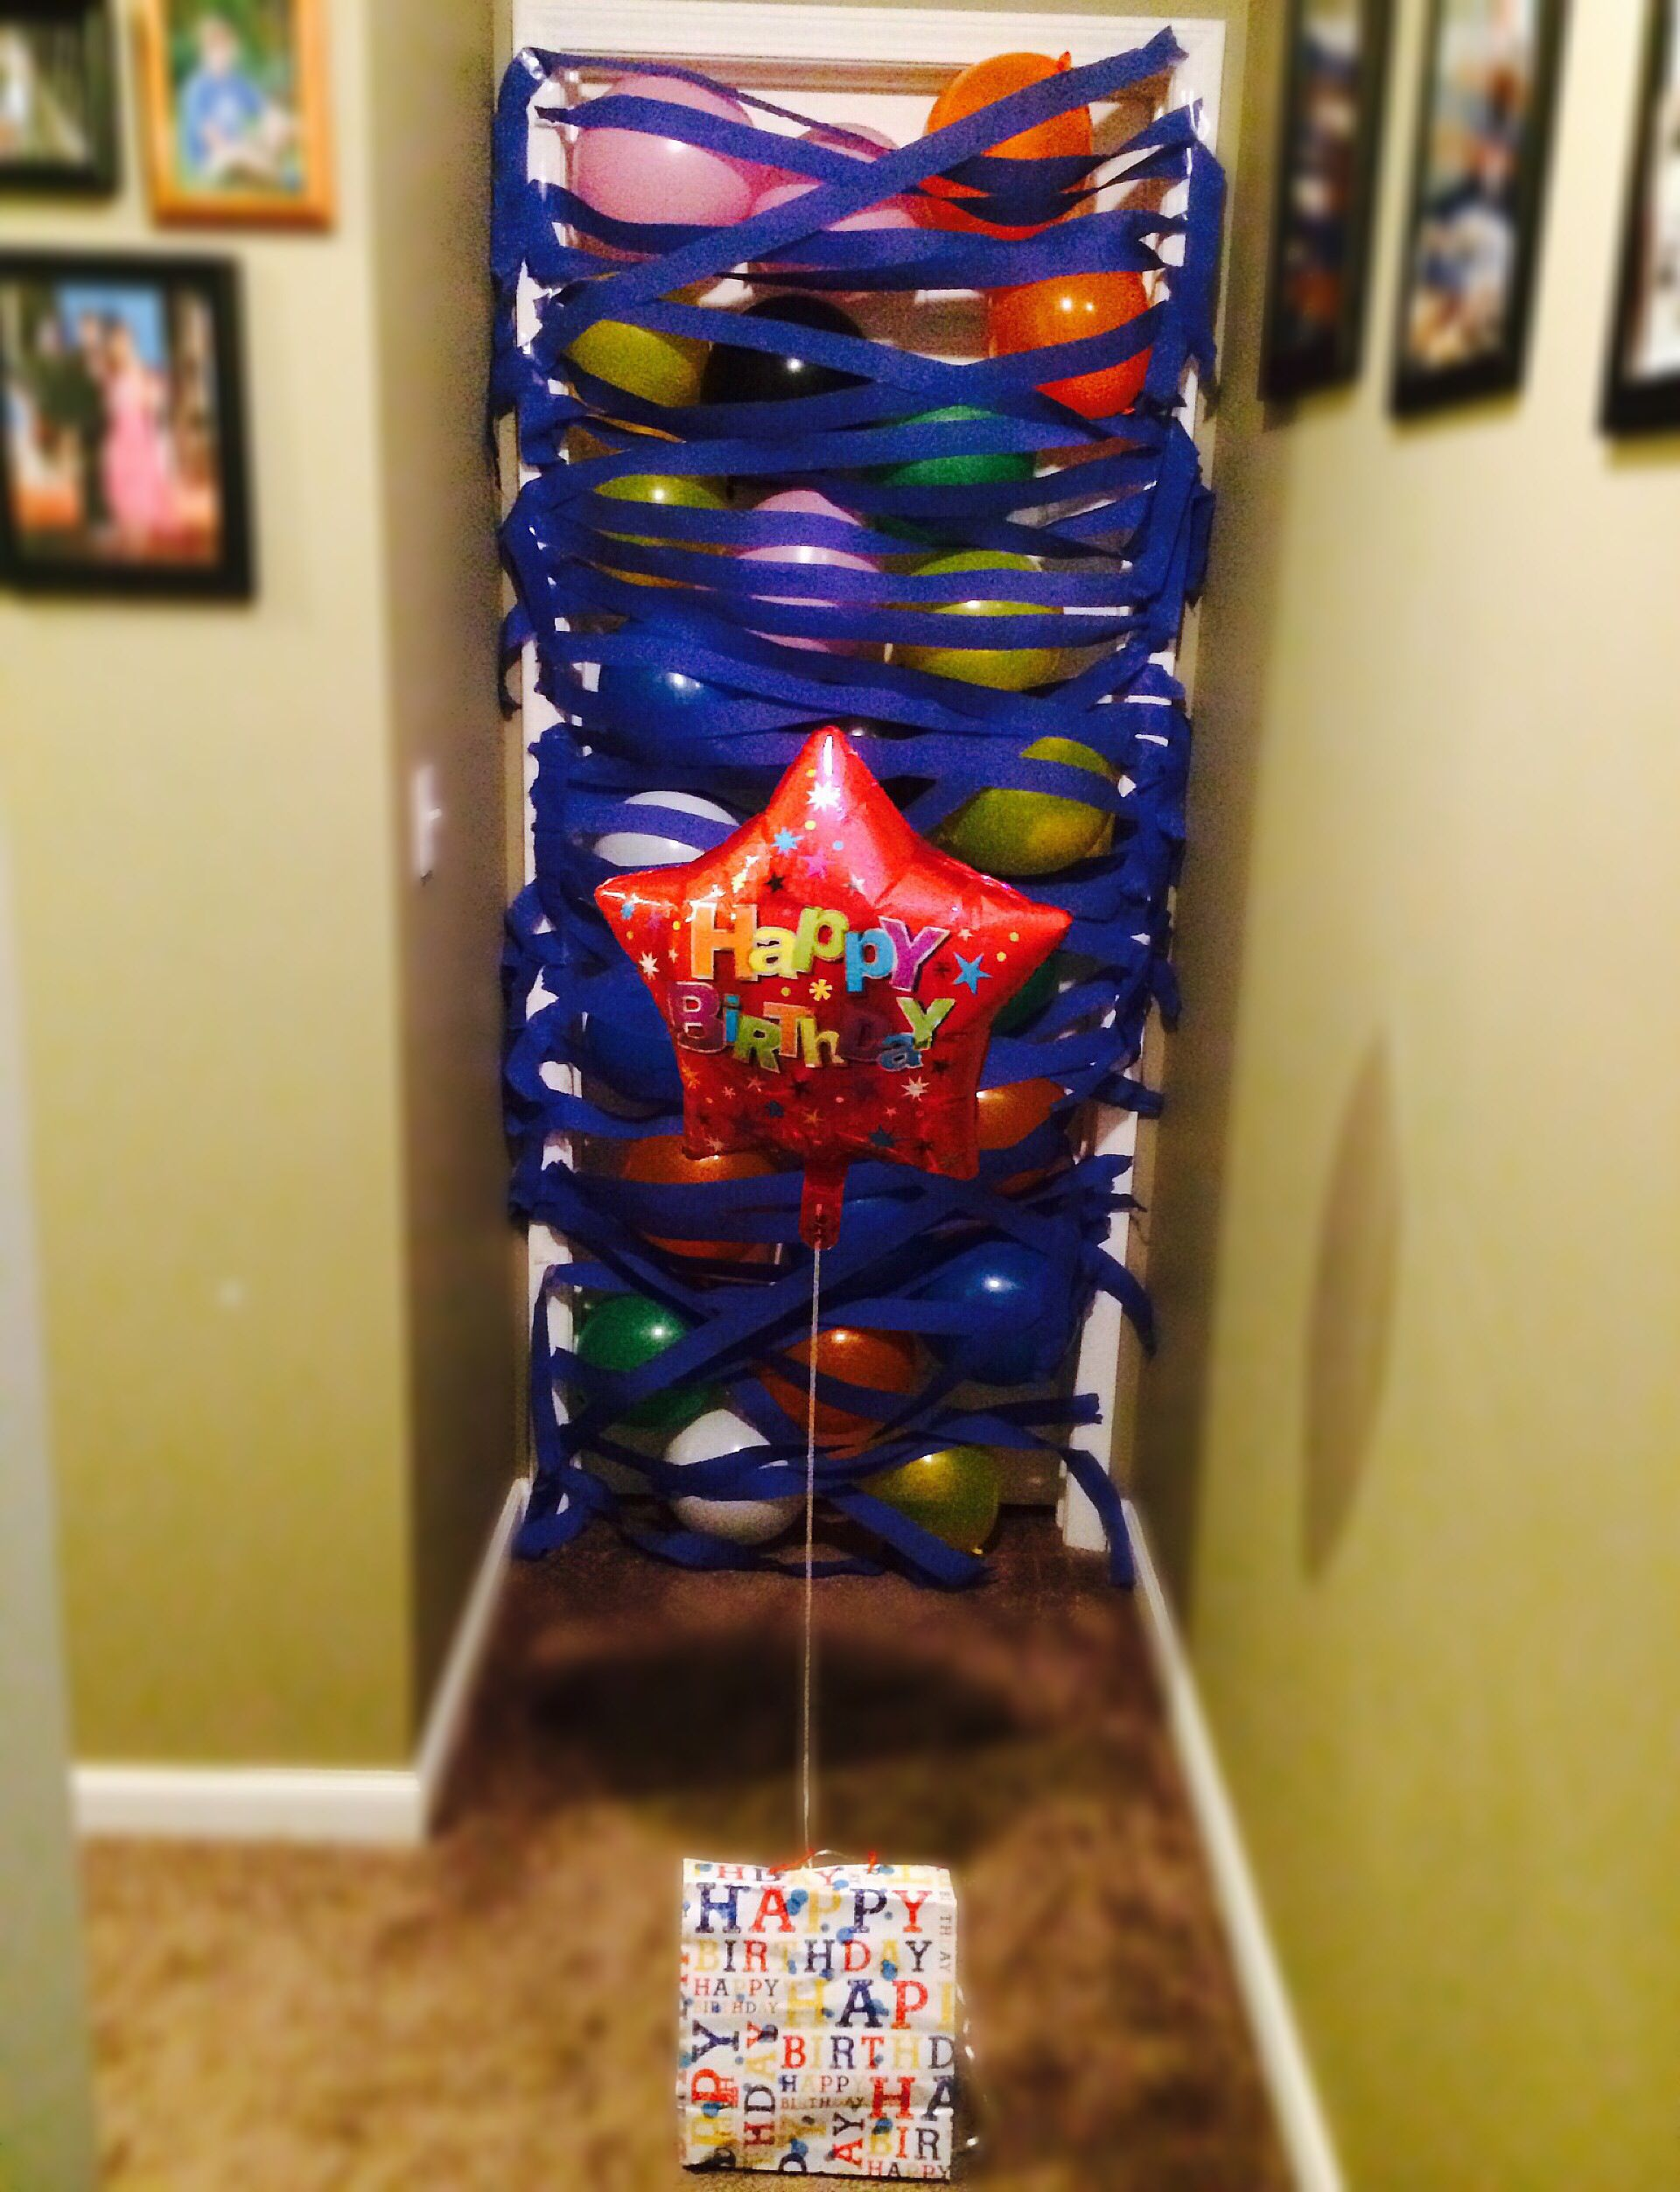 A balloon avalanche as a birthday morning surprise. I did